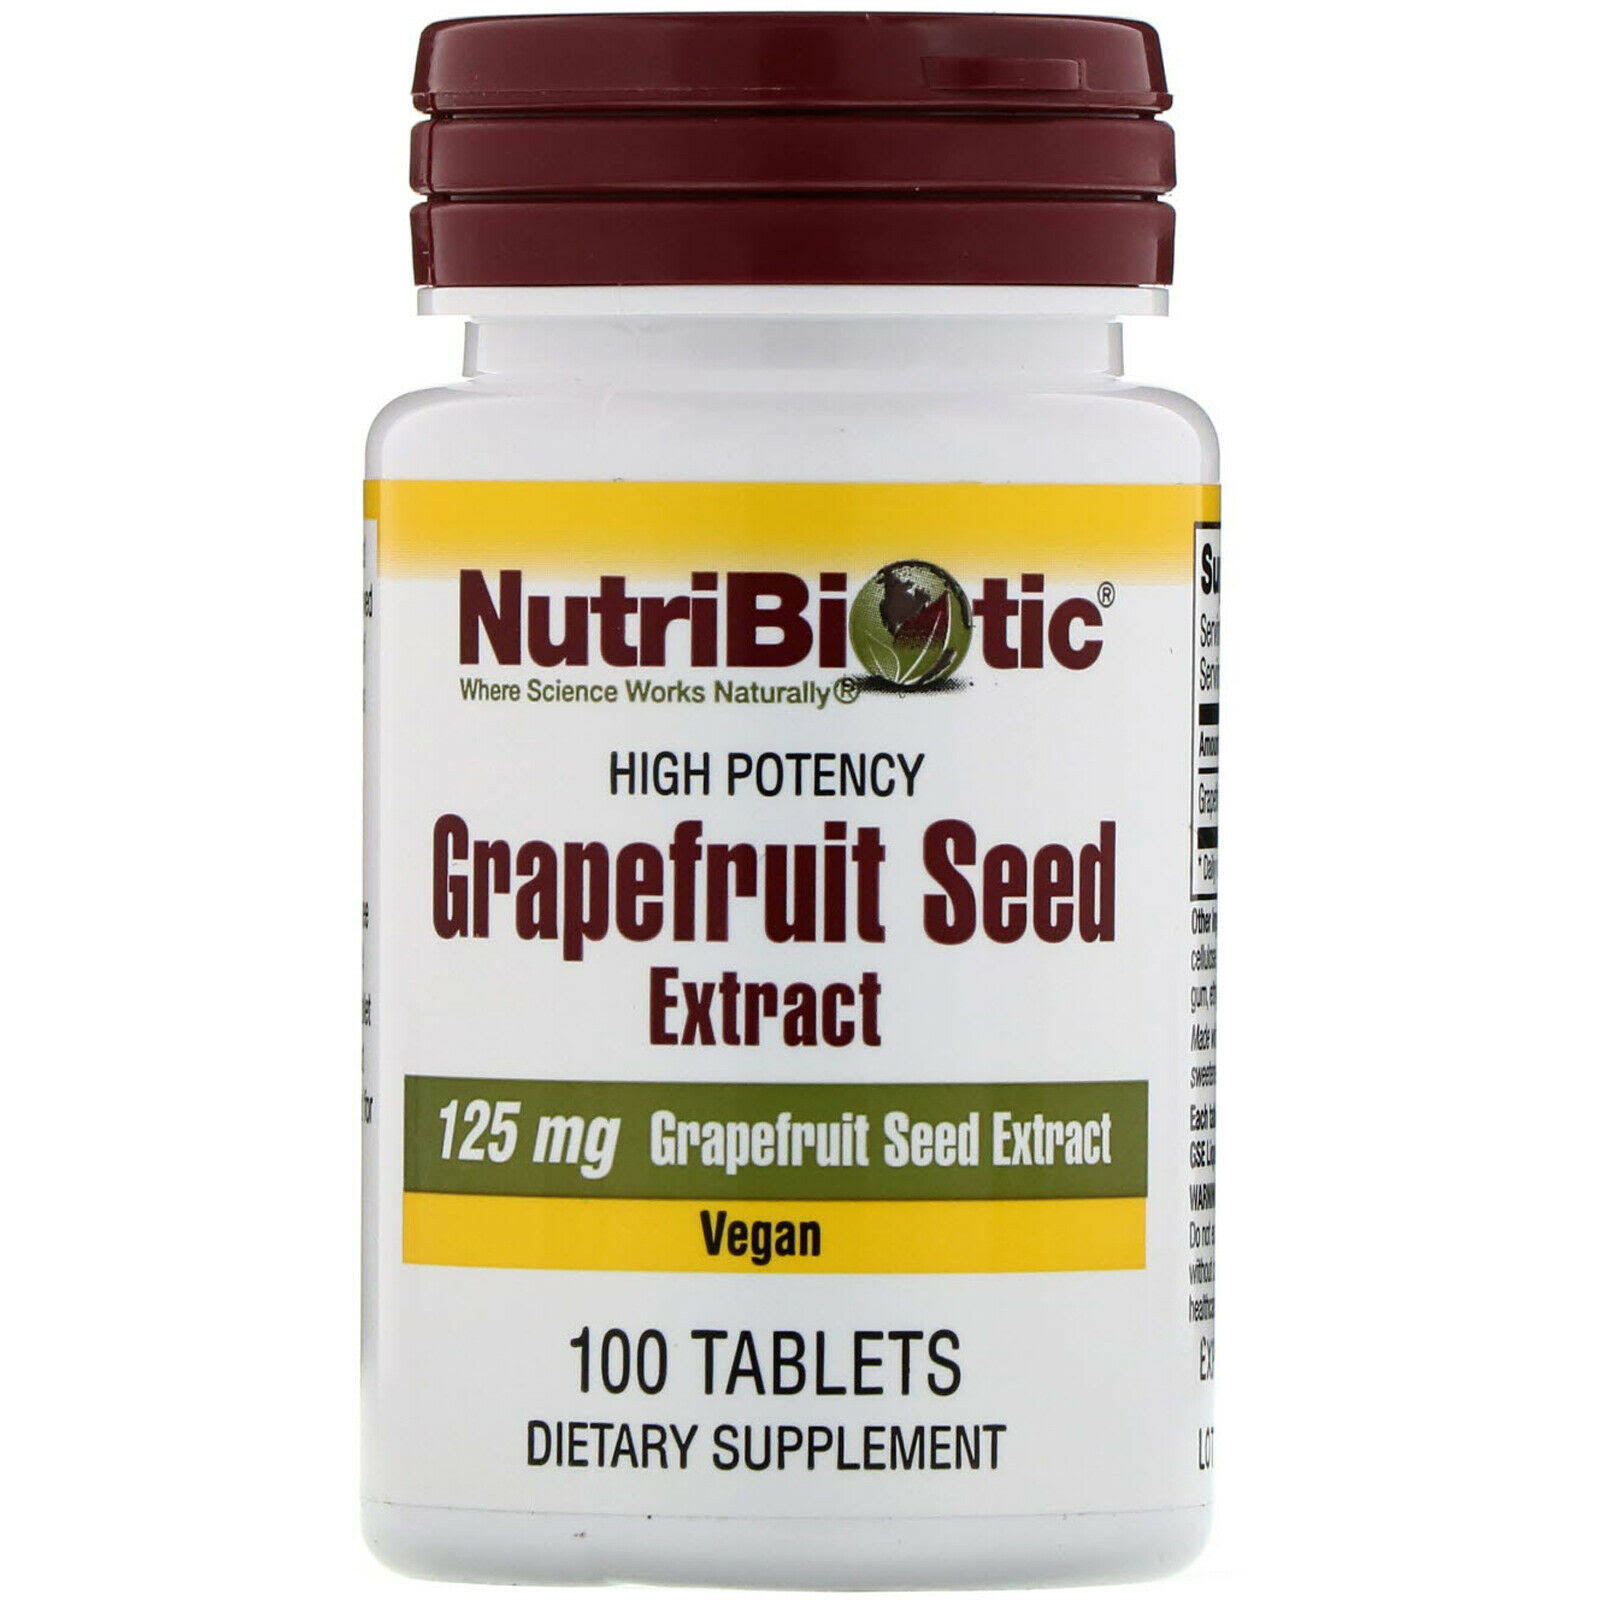 Nutribiotic 125mg Grapefruit Seed Extract - 100 Tablets